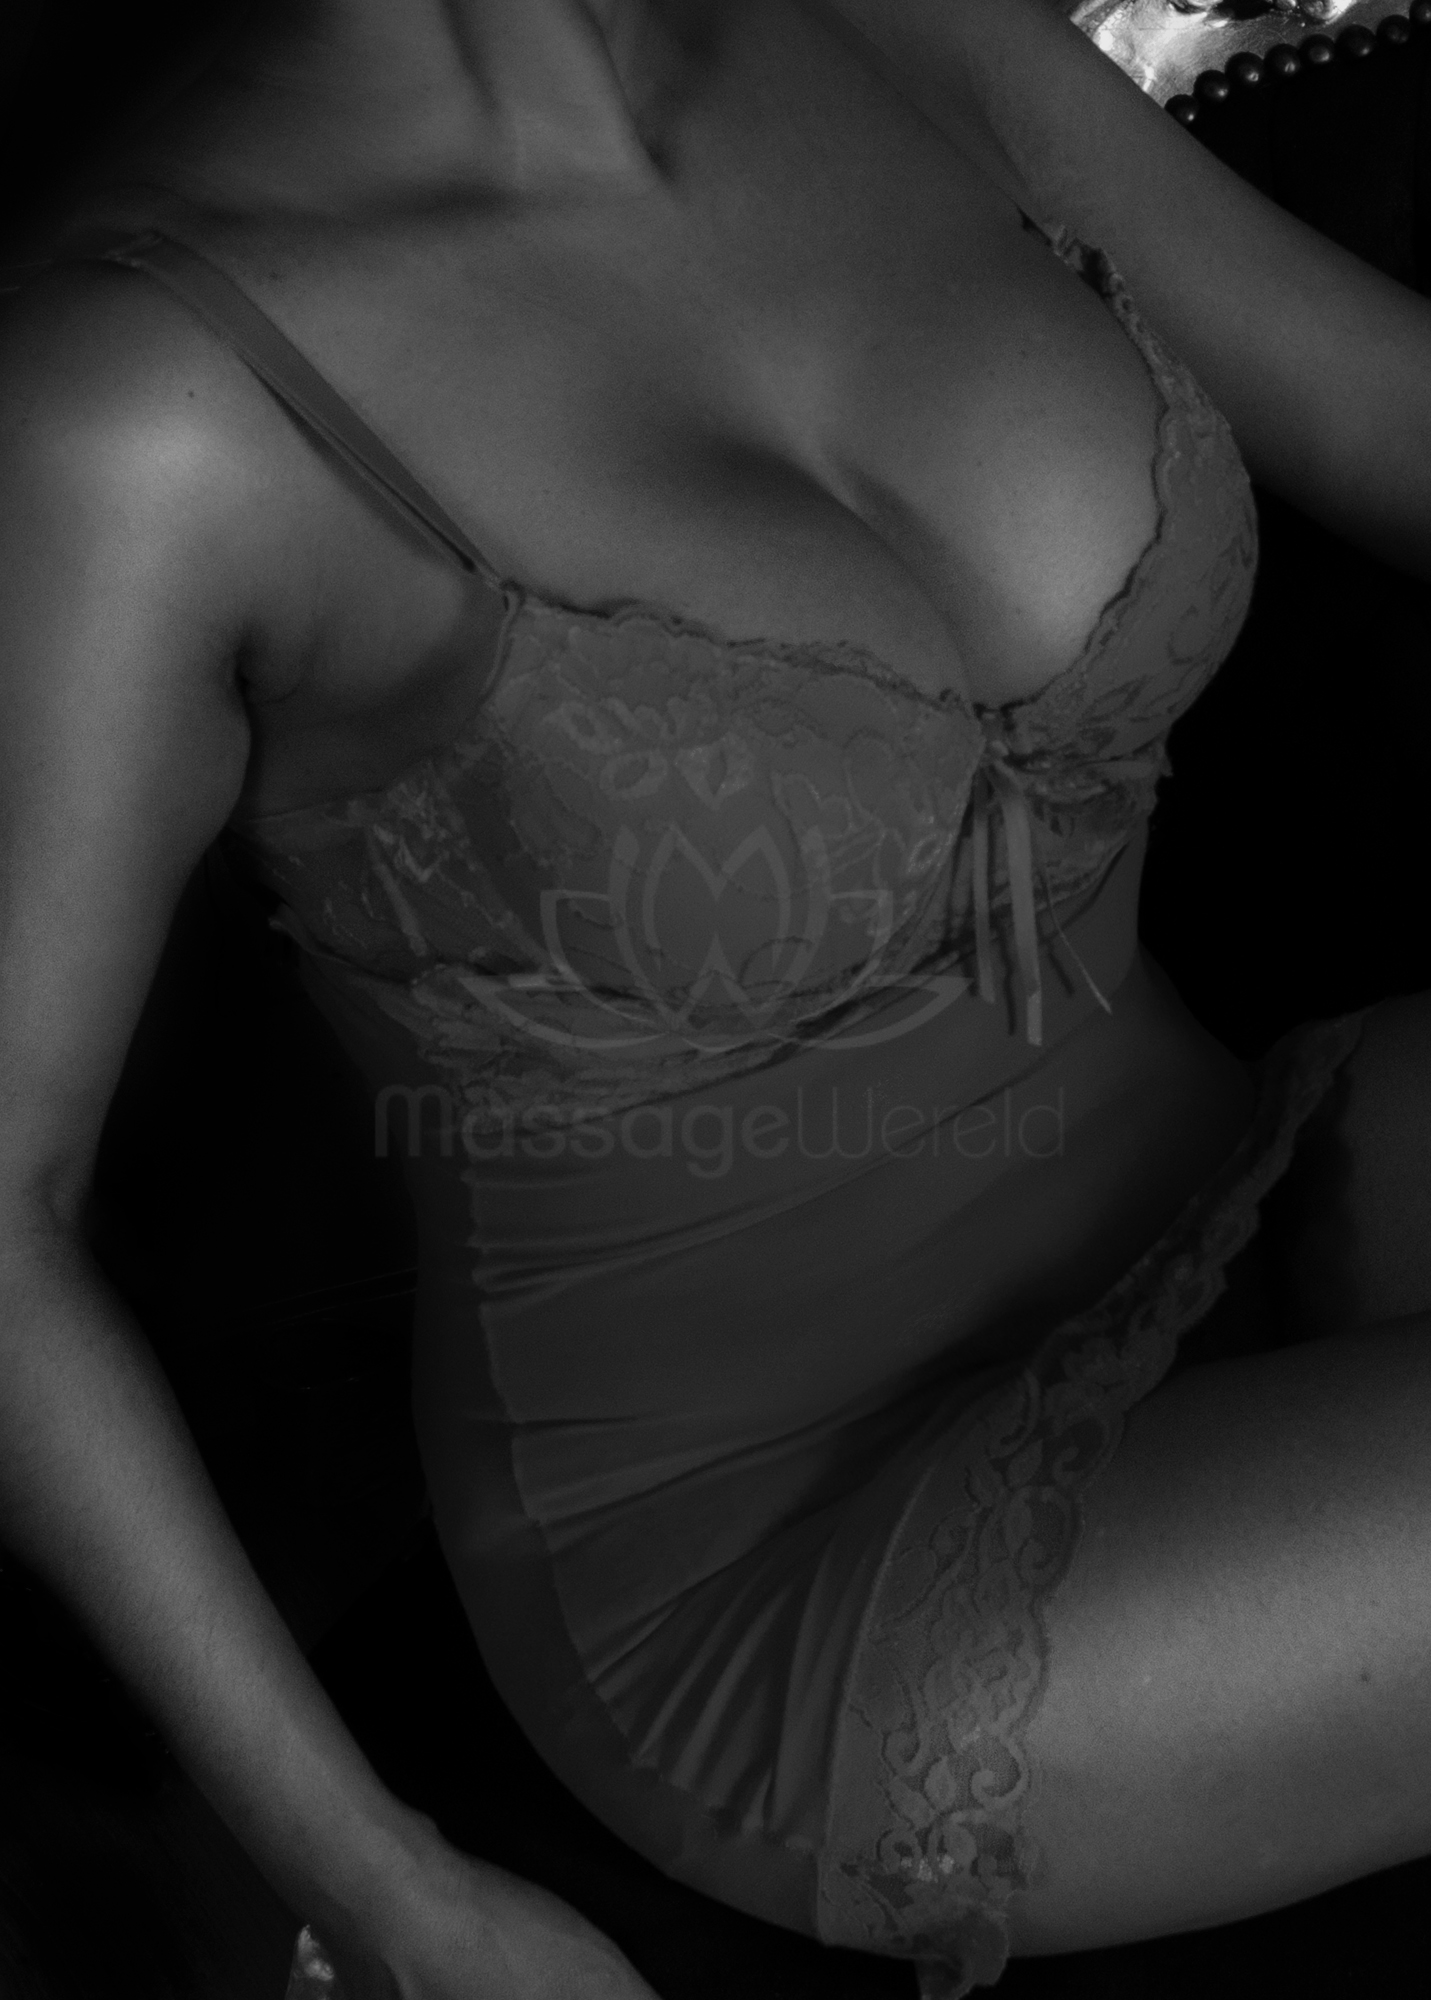 sex film graties body to body massage den haag